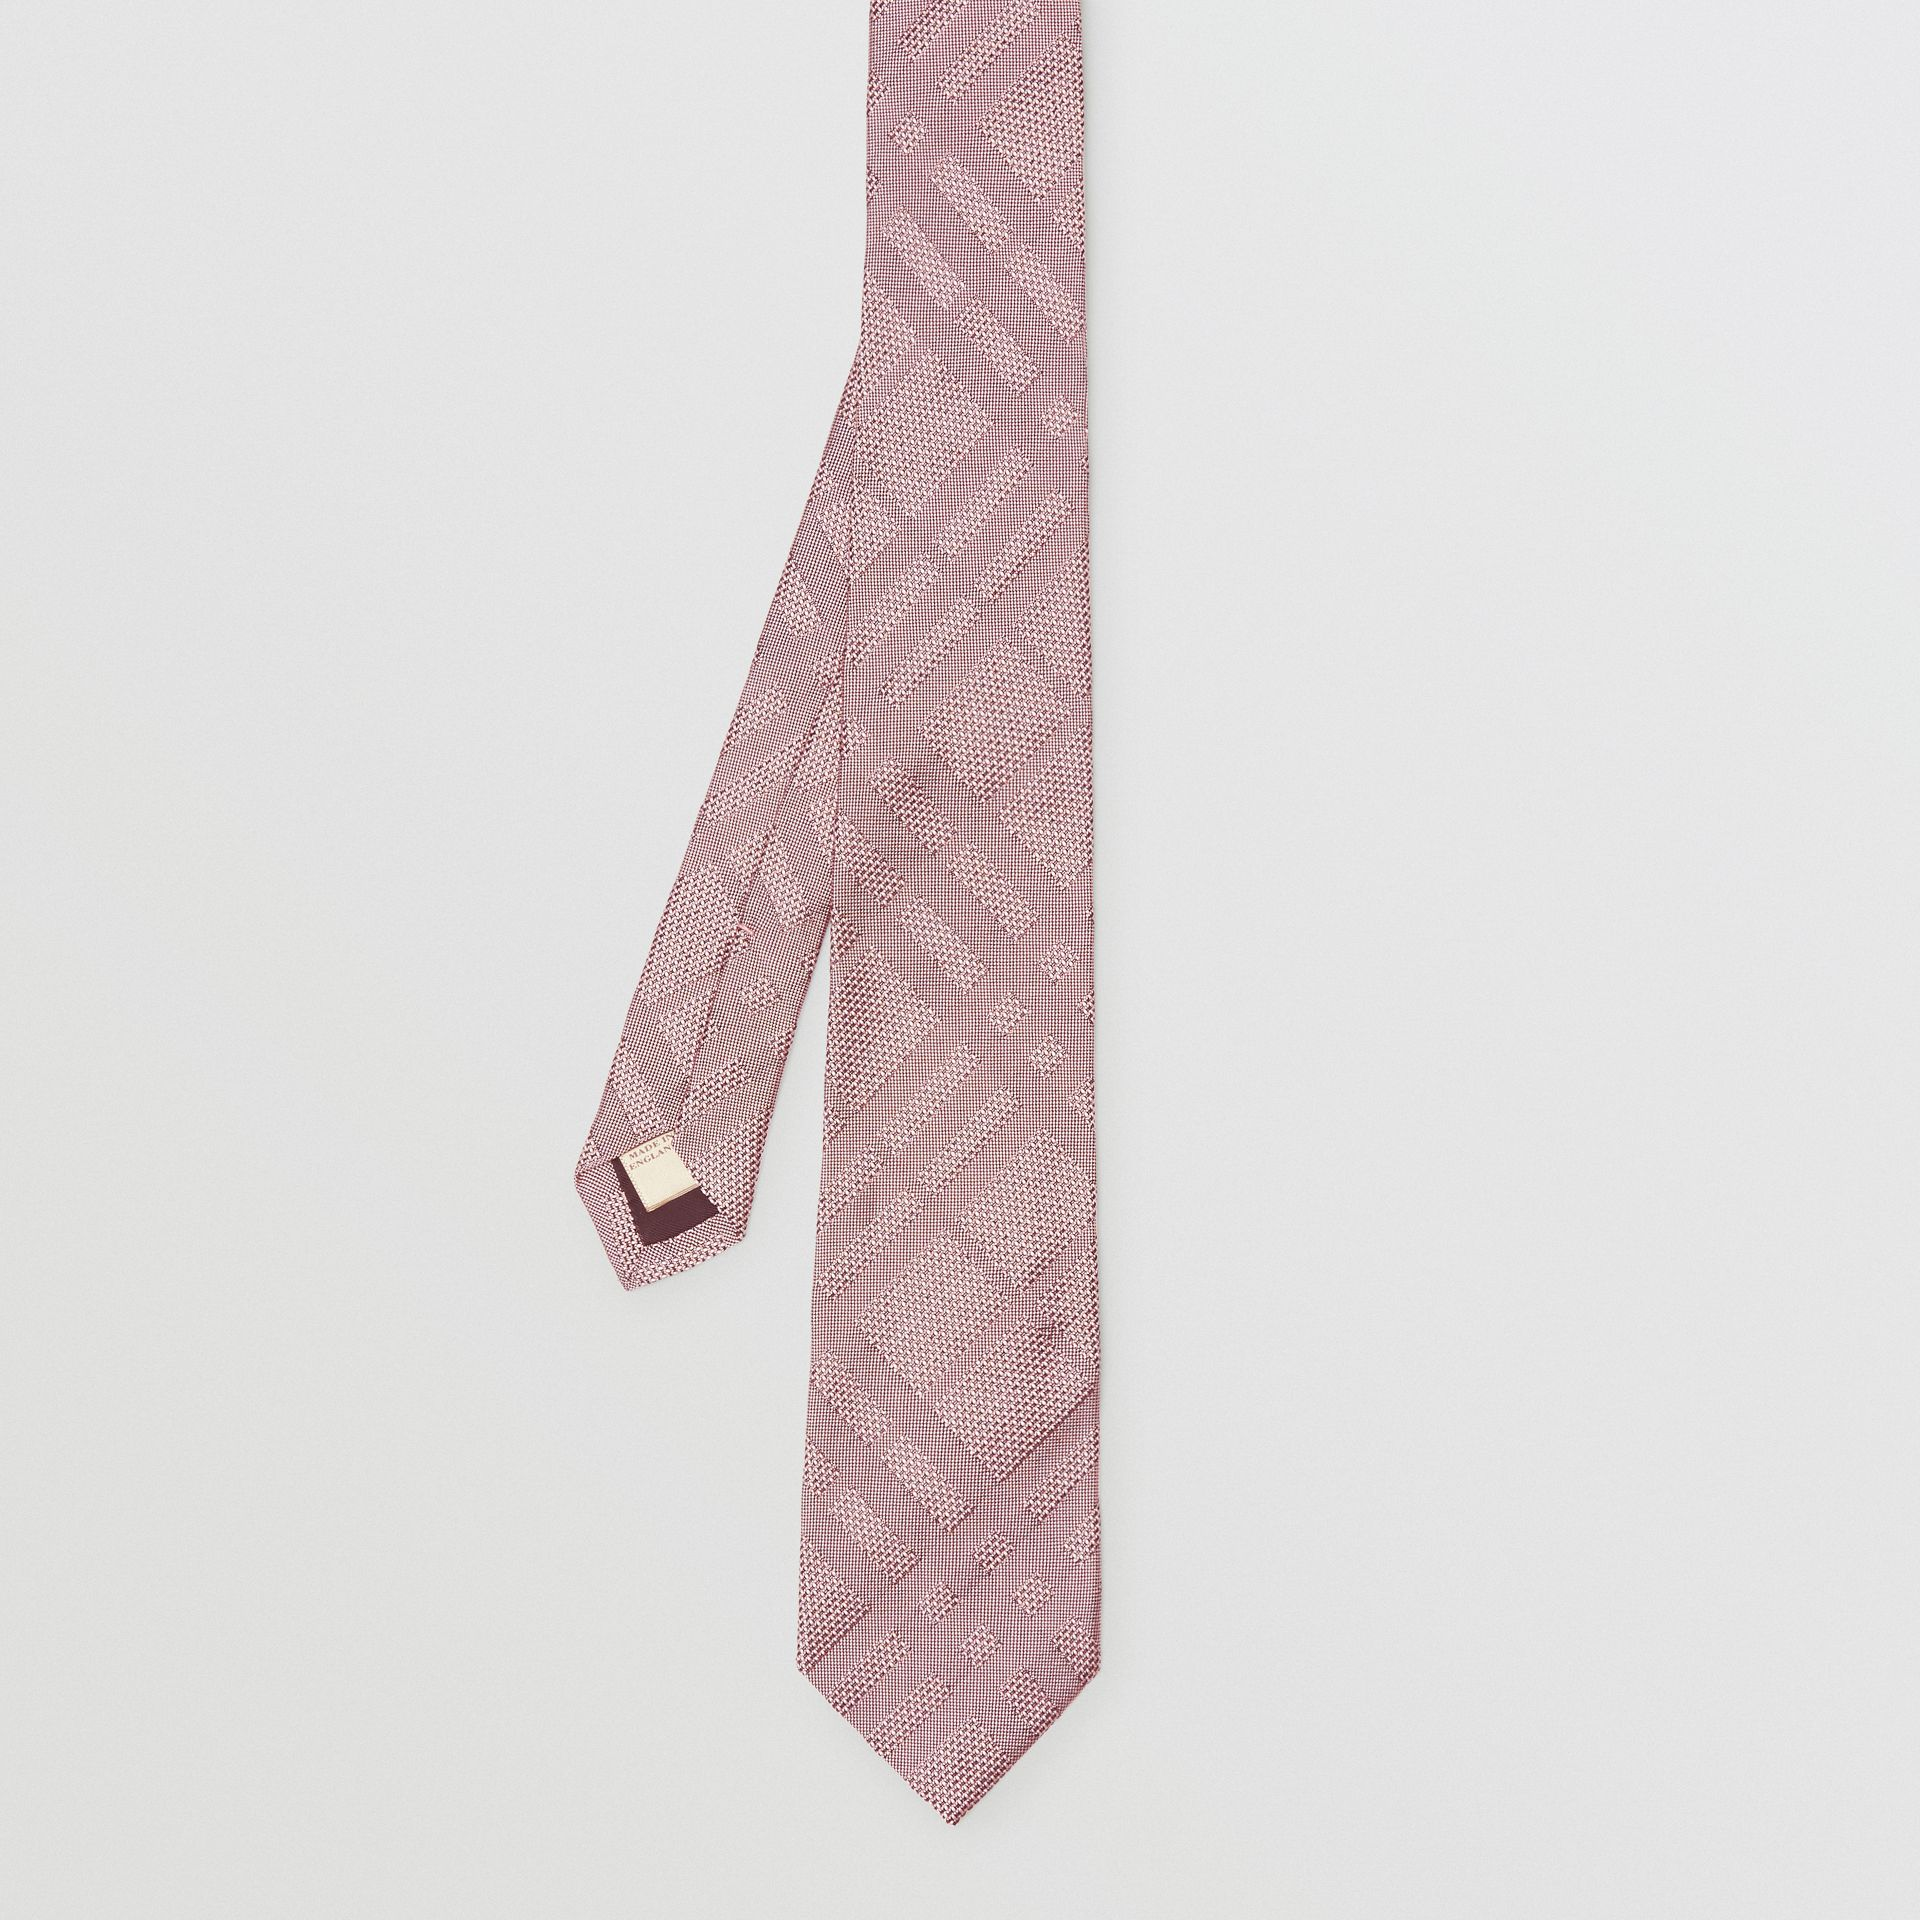 Modern Cut Check Silk Jacquard Tie in Alabaster Pink - Men | Burberry United States - gallery image 4